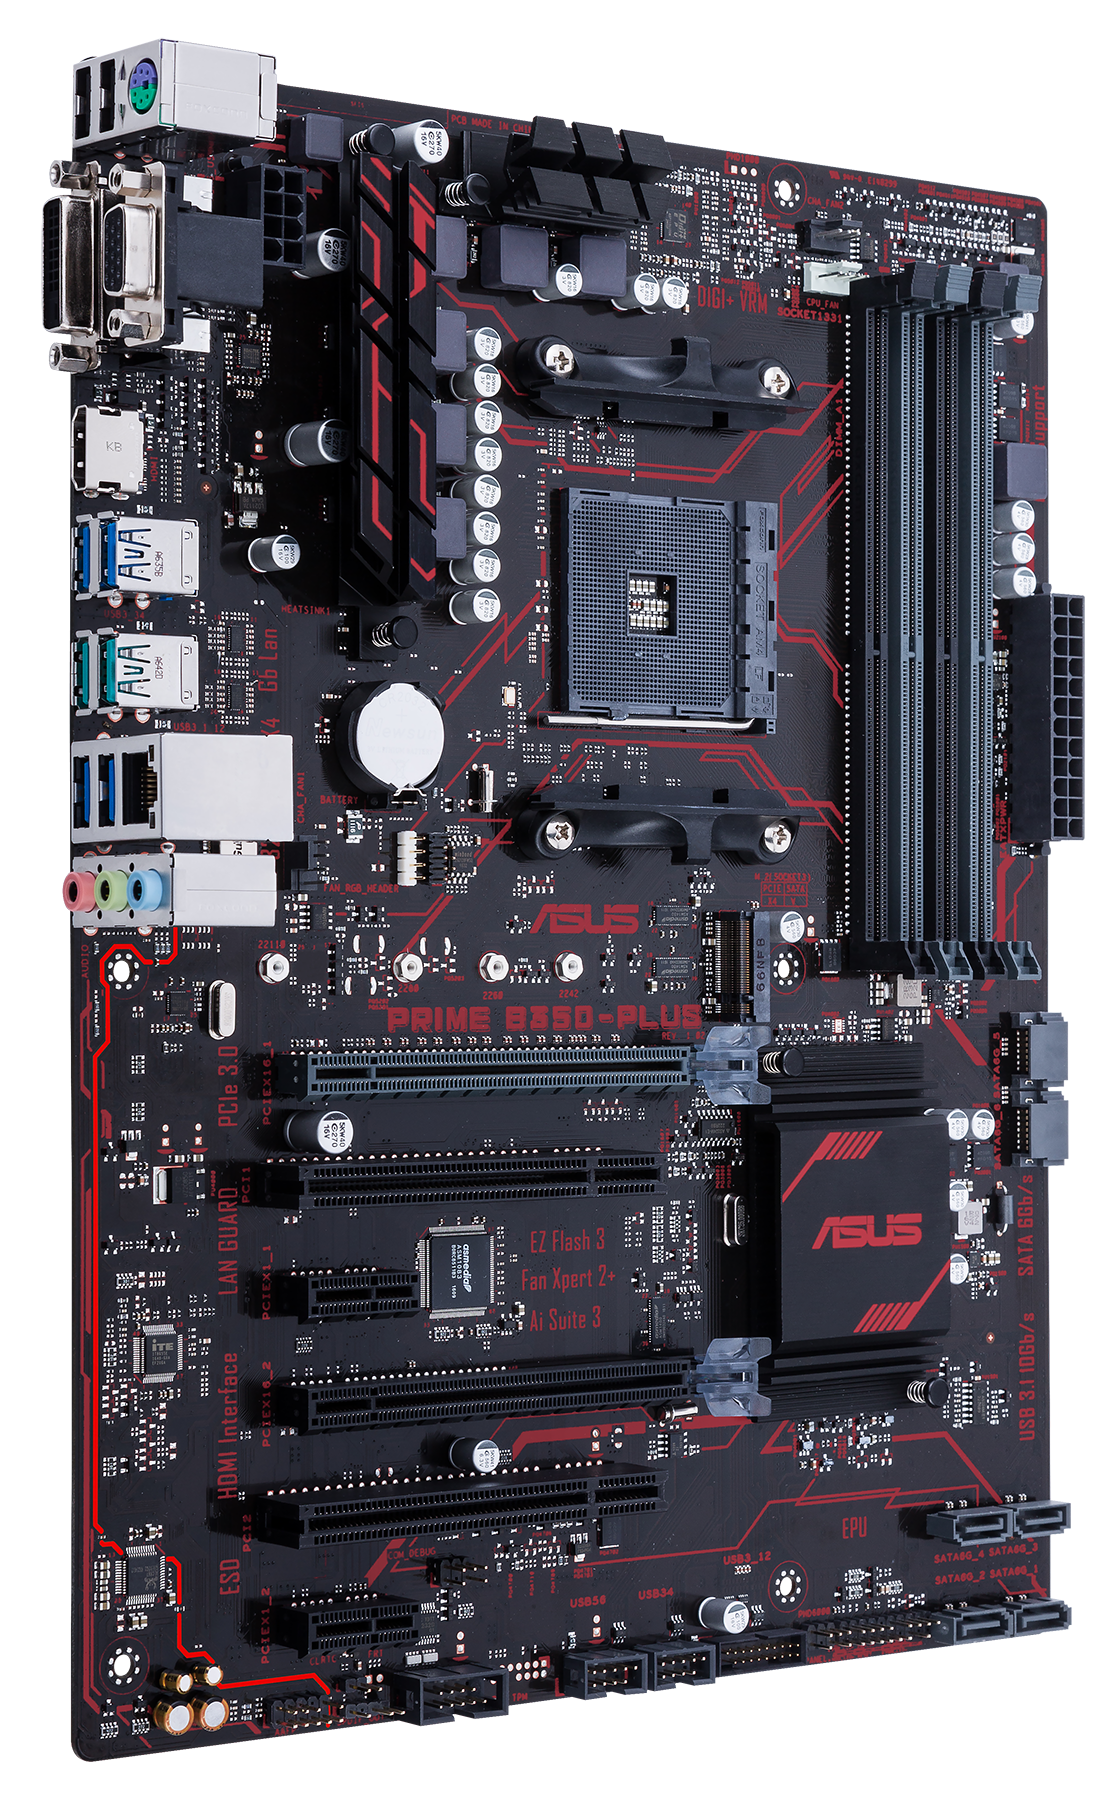 ASUS Prime B350 Plus - ASUS Unveils AMD AM4 Motherboards for Ryzen (With Pricing and Availability)